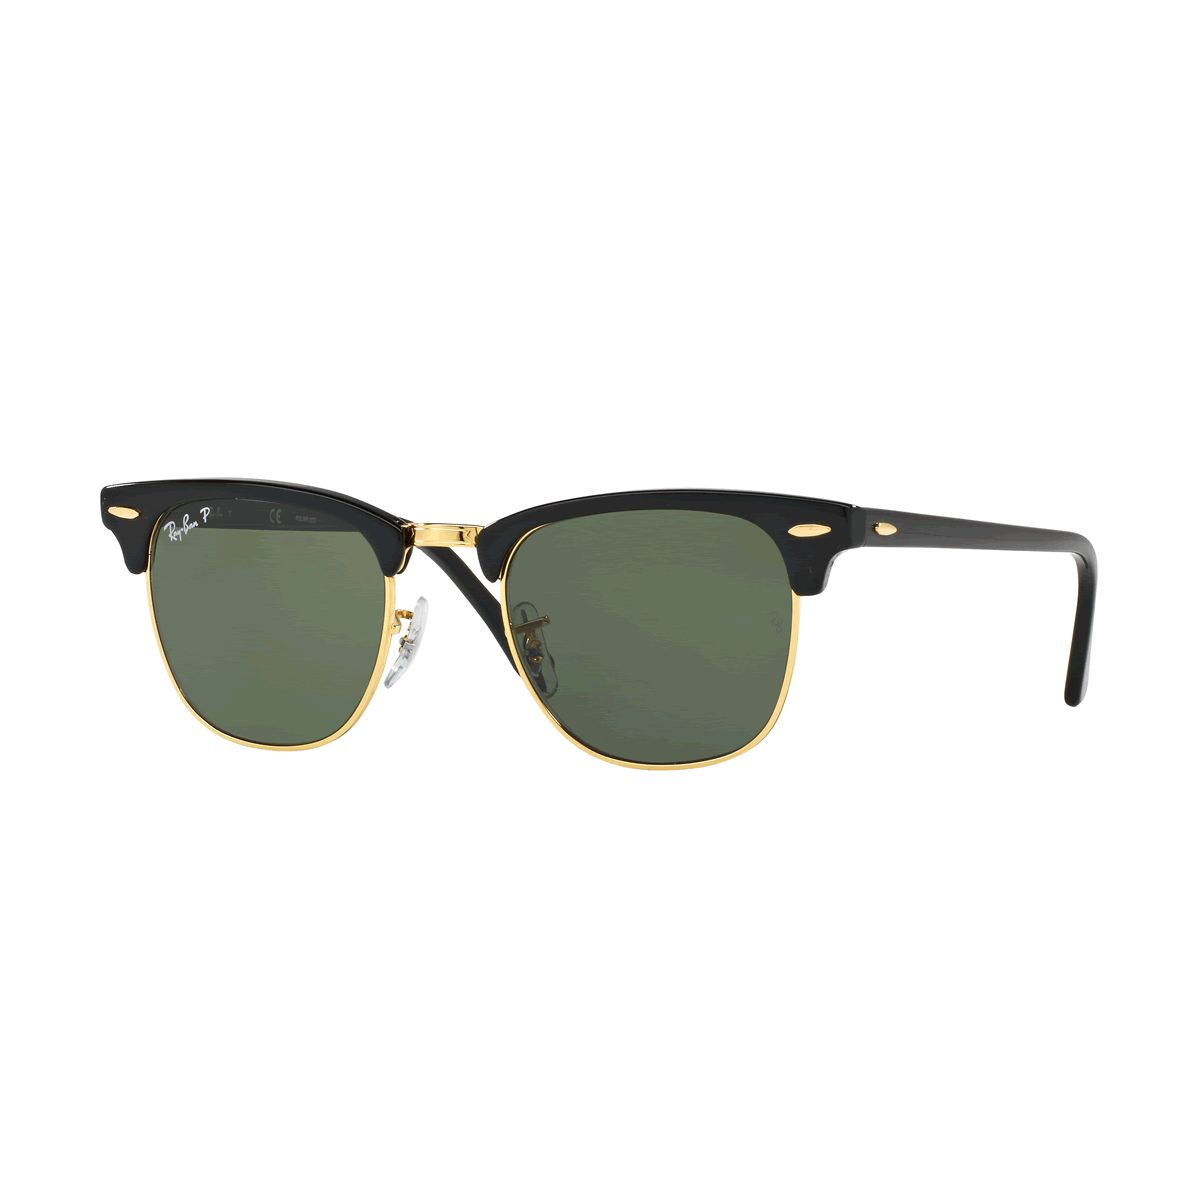 3b4ee55b0b5ed Ray-Ban Sunglasses - Mens   Womens Ray-Bans - Macy s